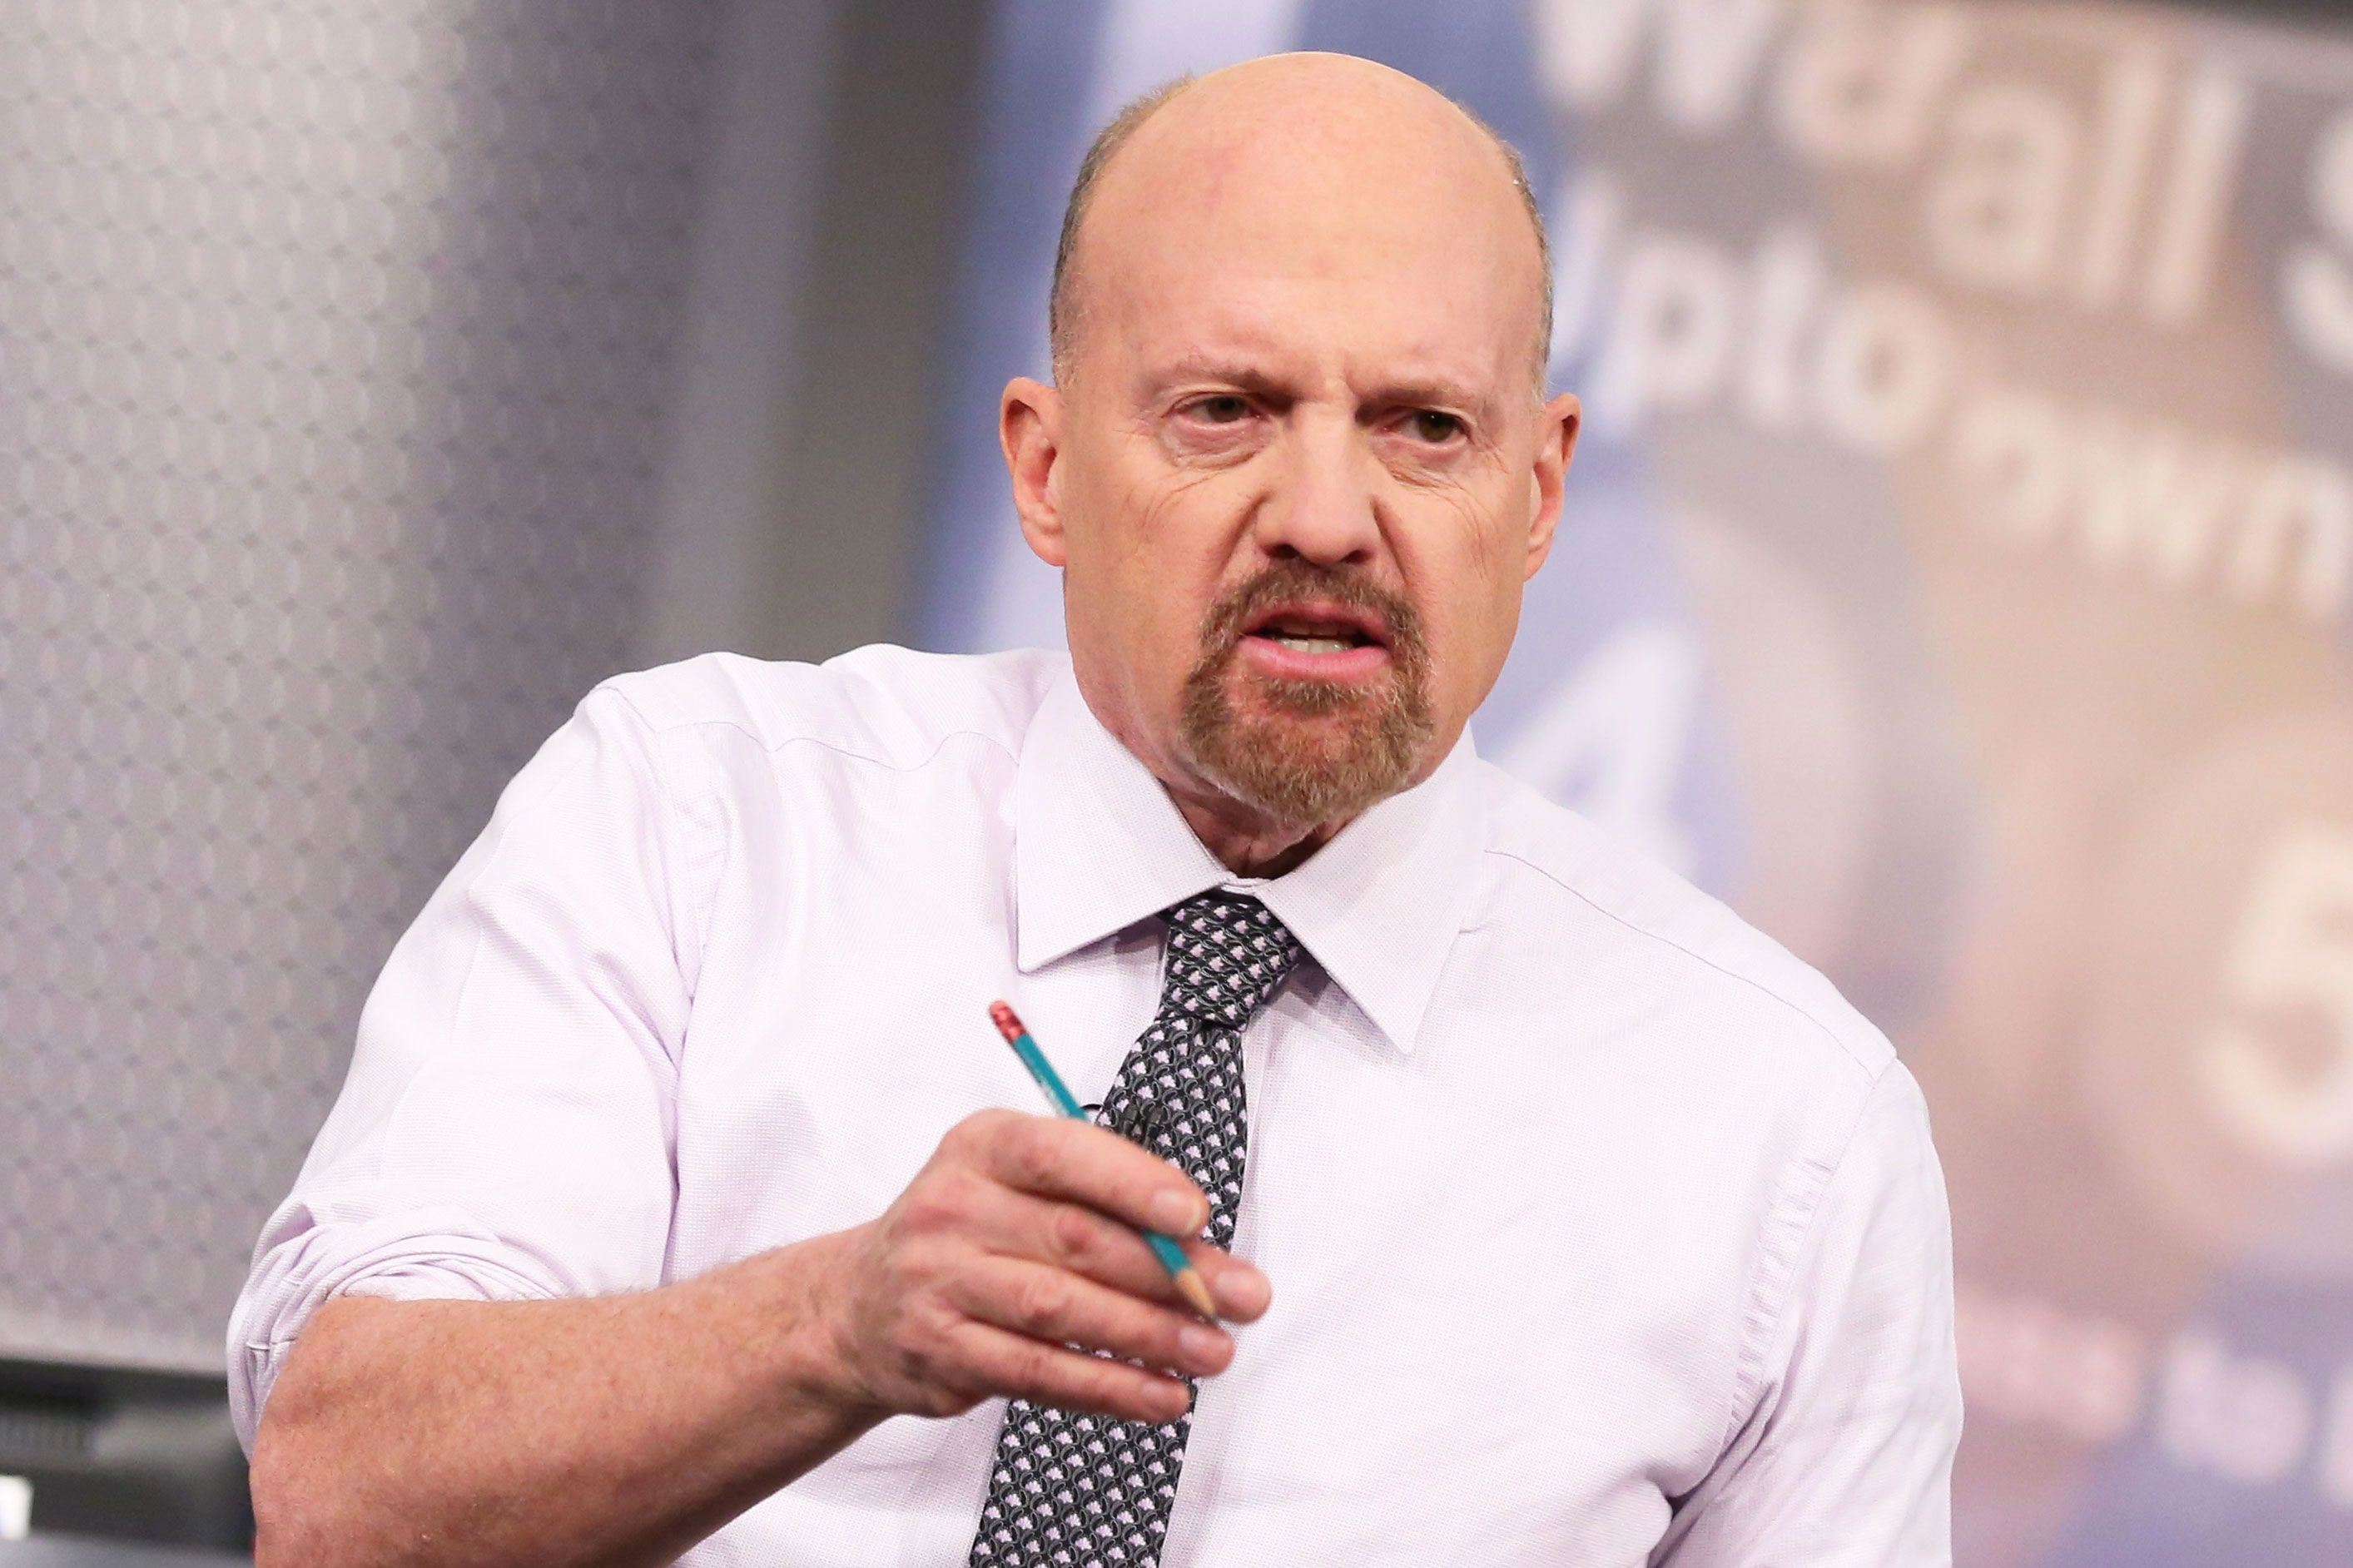 Everything Jim Cramer said on 'Mad Money,' including earnings, China winners, Centene CEO